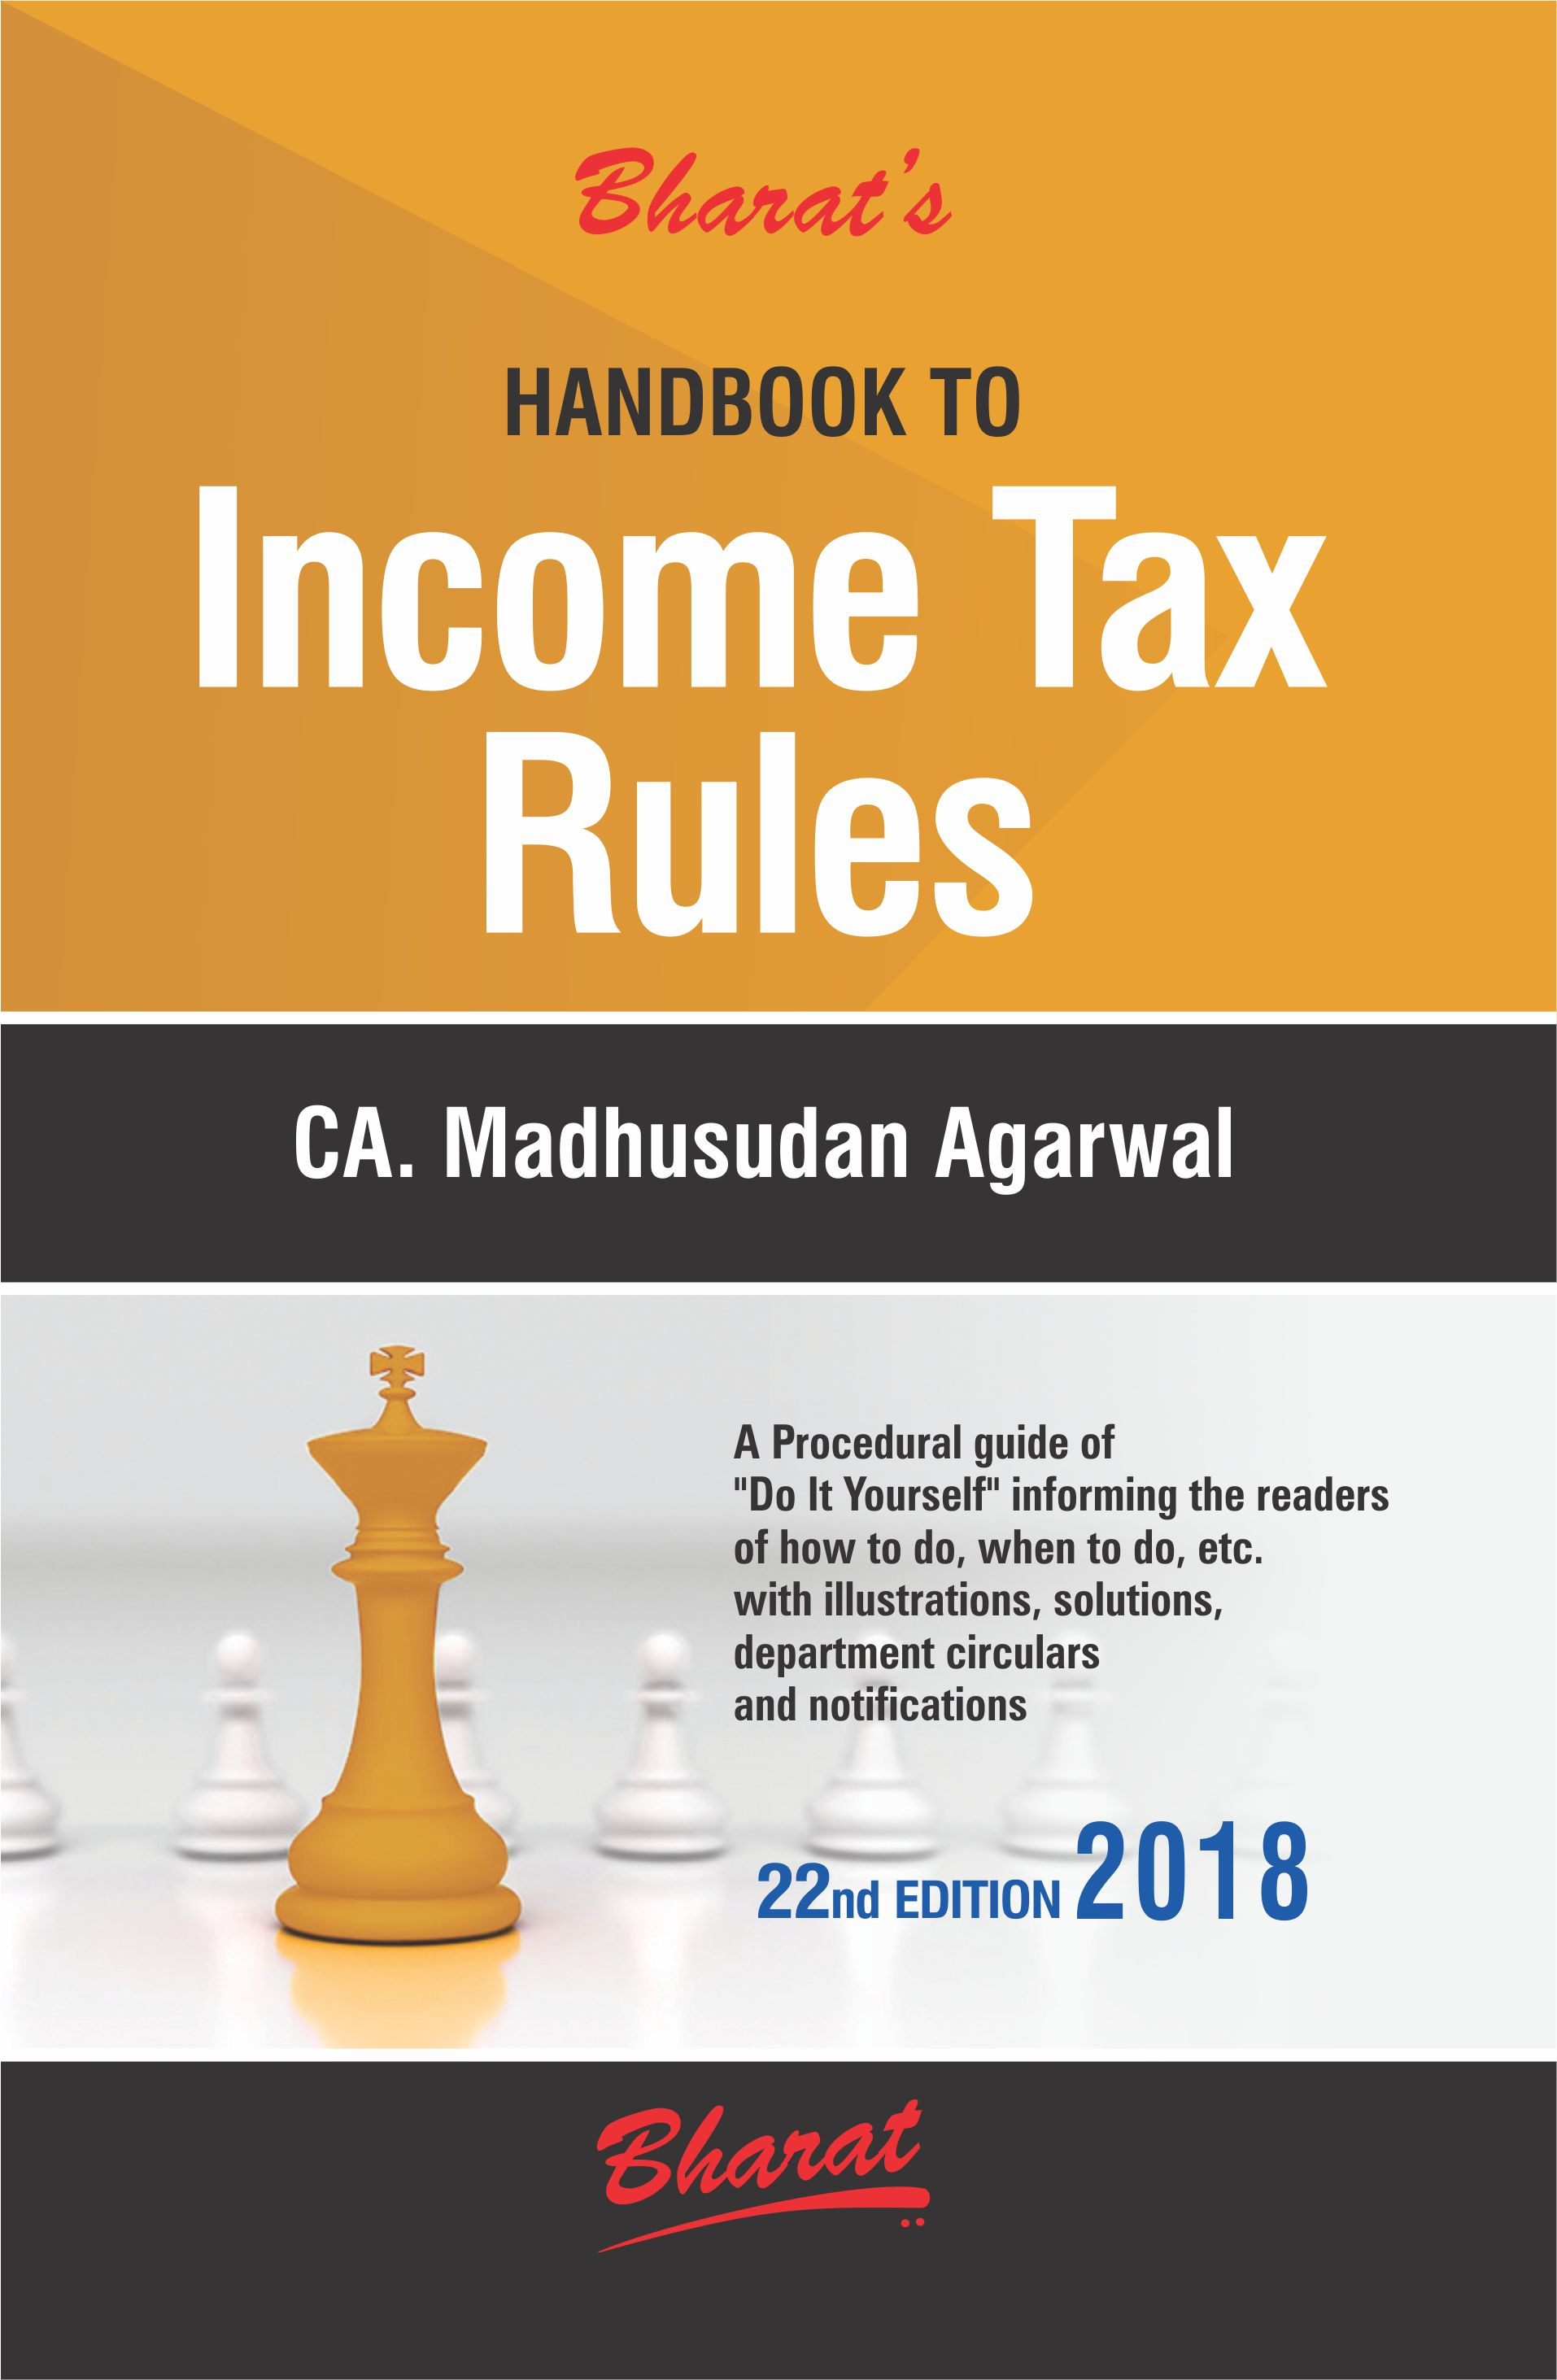 Handbook to INCOME TAX RULES